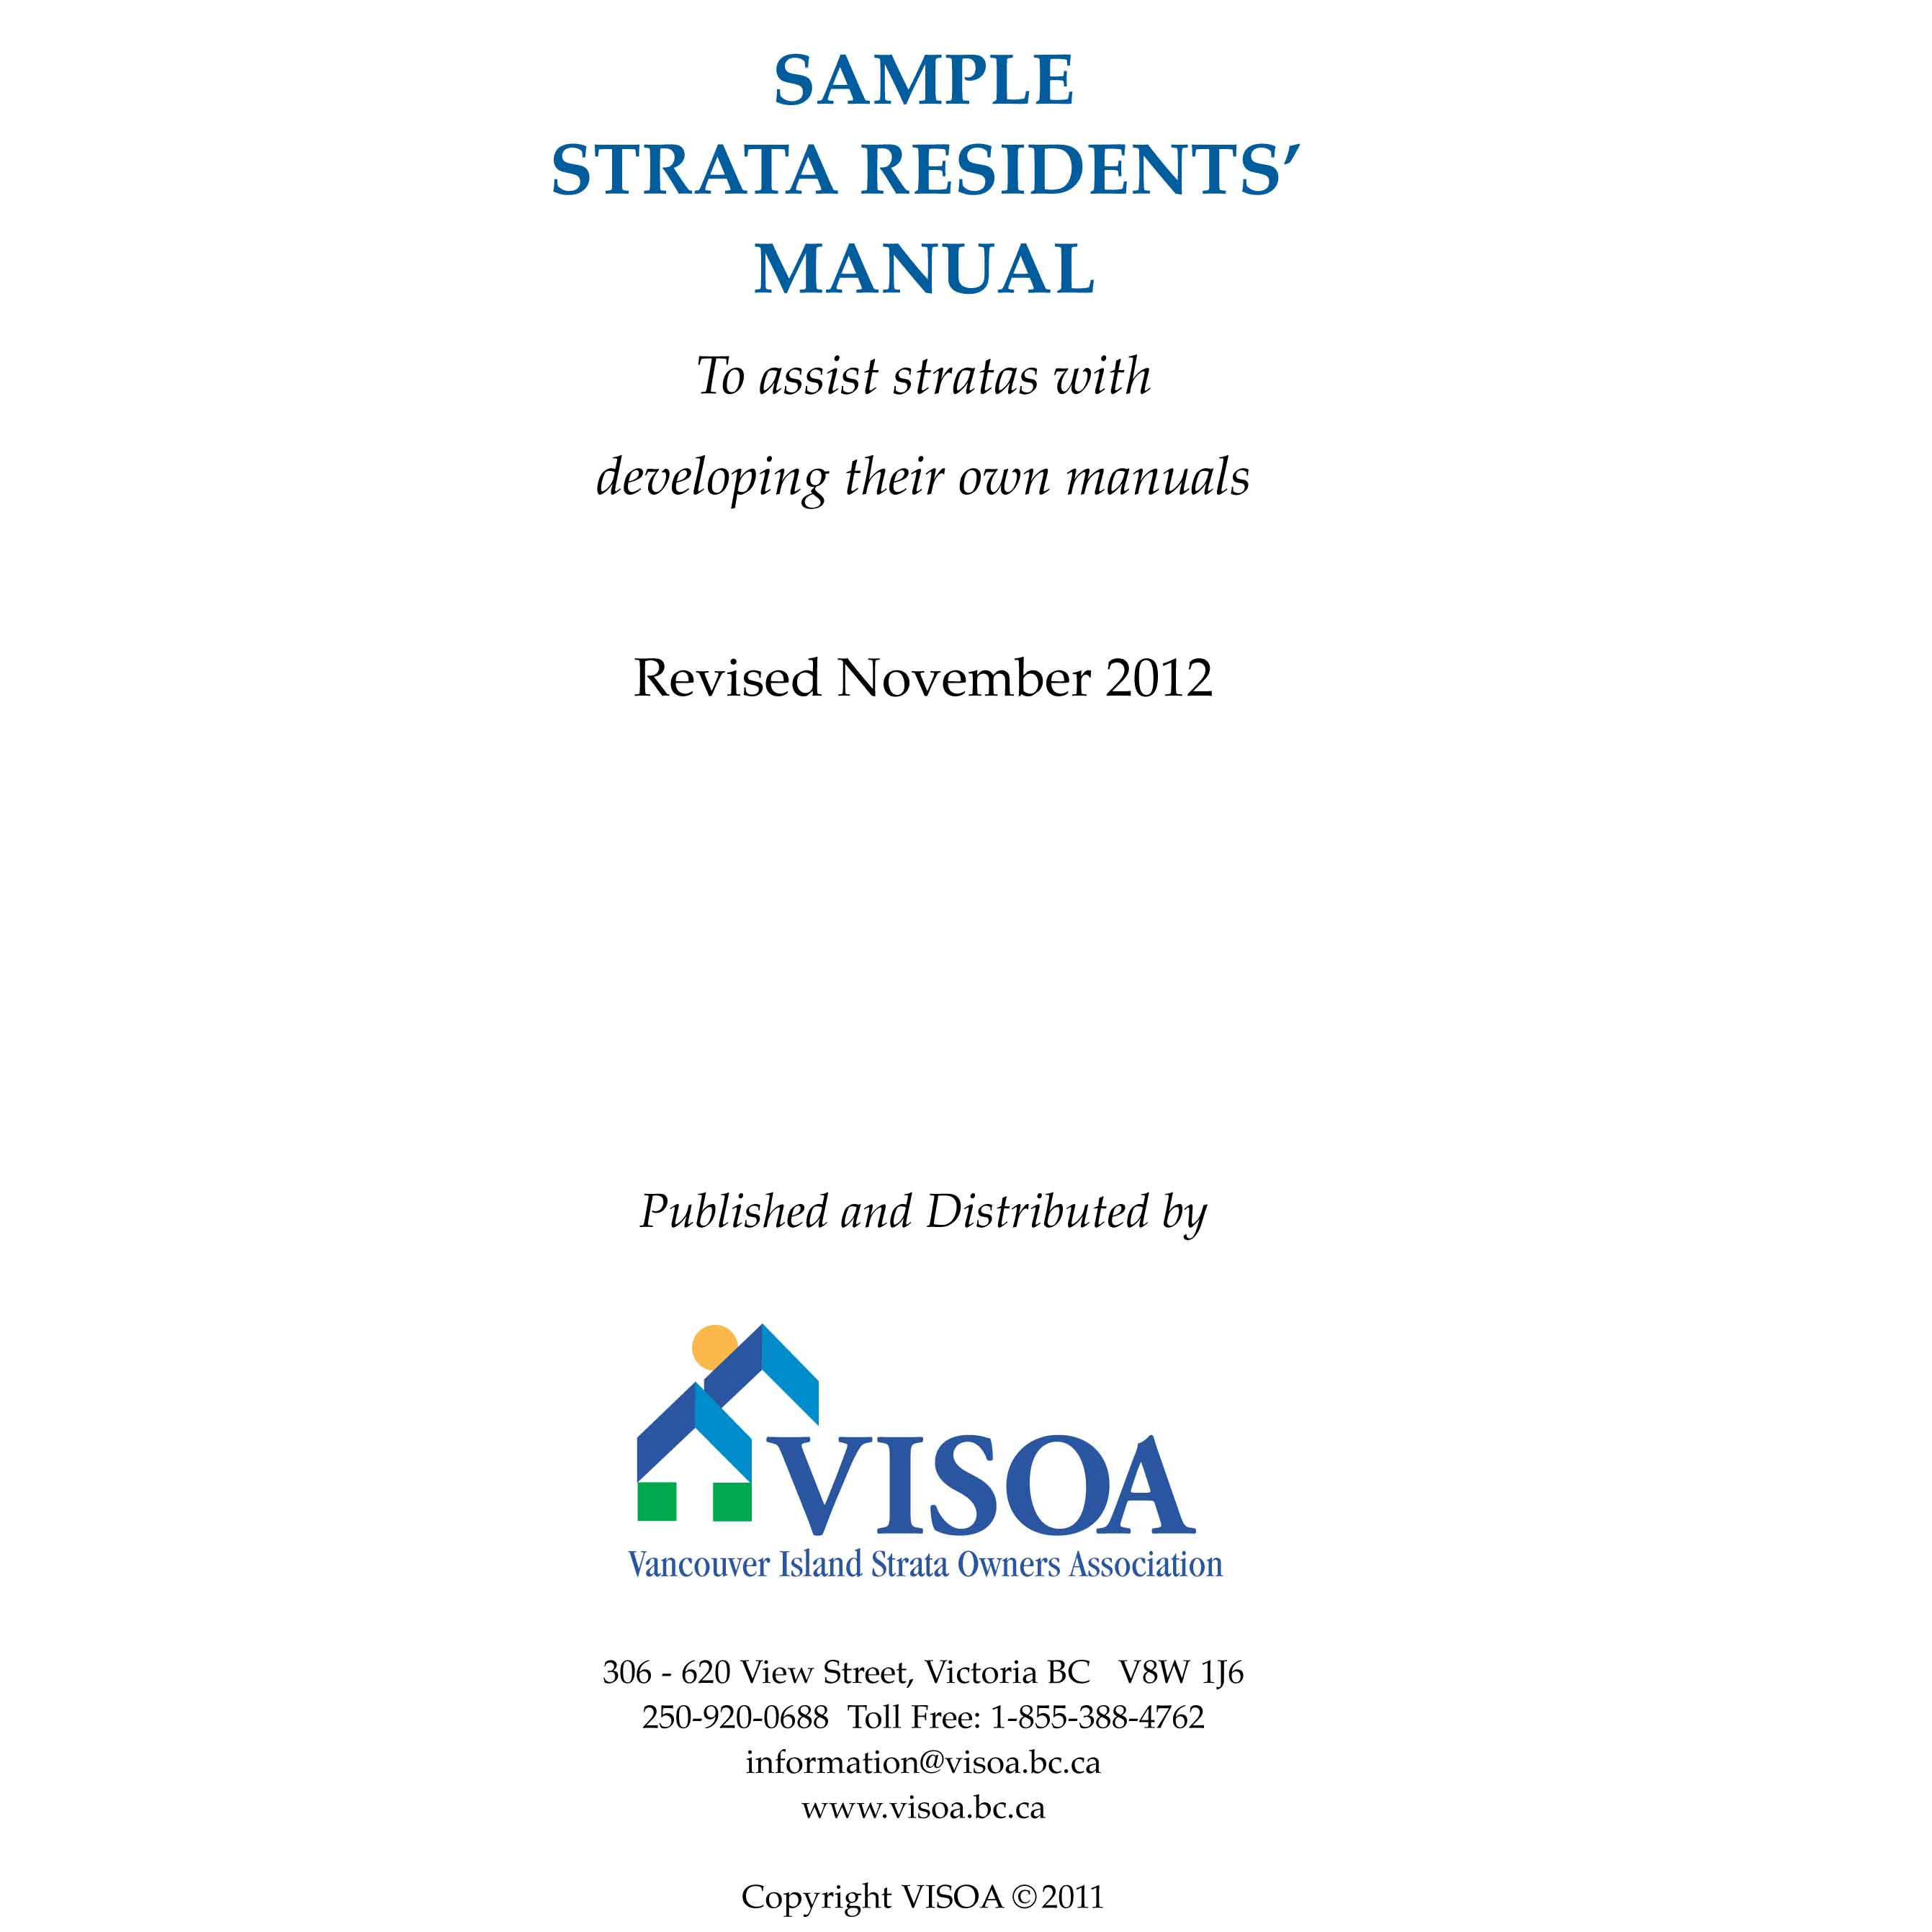 Maintenance Manual Template | Sample Strata Residents Manual Vancouver Island Strata Owners